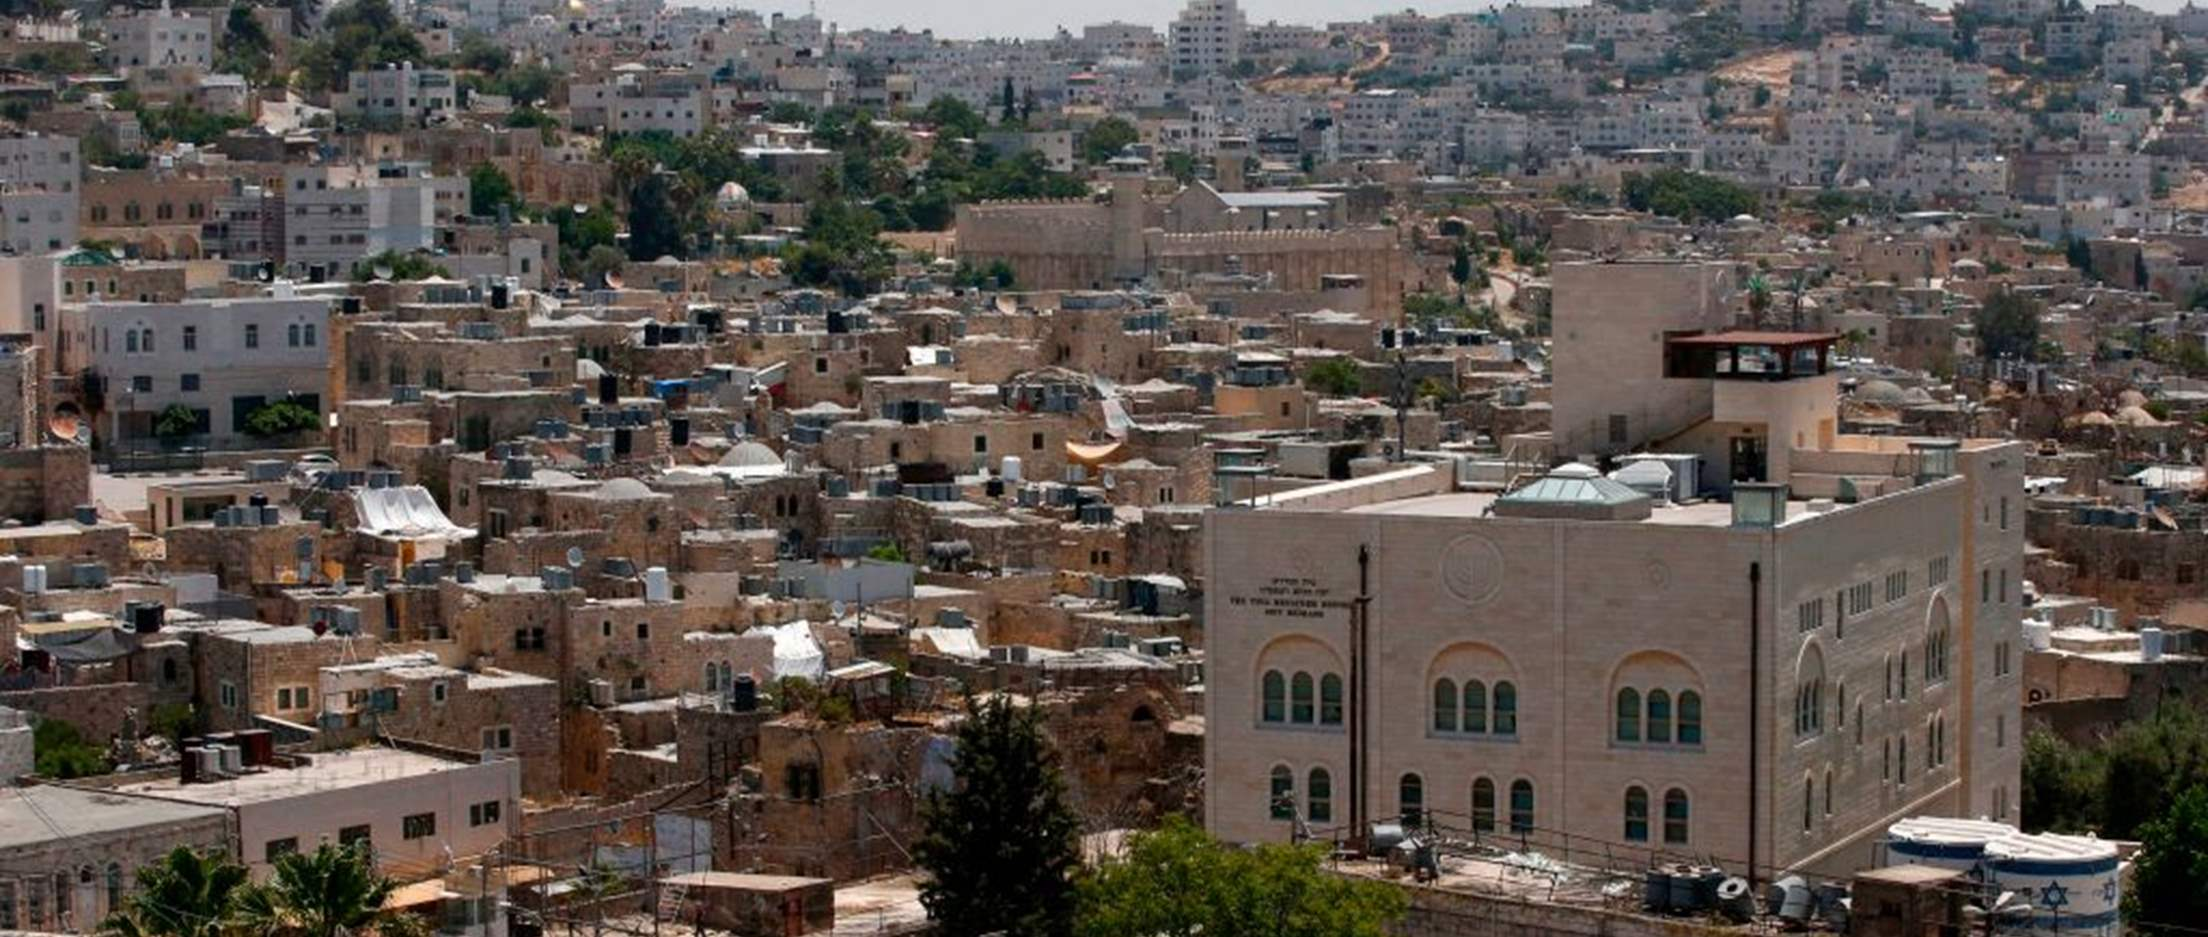 """Israel/OPT: Unlawful """"annexation"""" plan promotes 'law of the jungle' and must be stopped"""